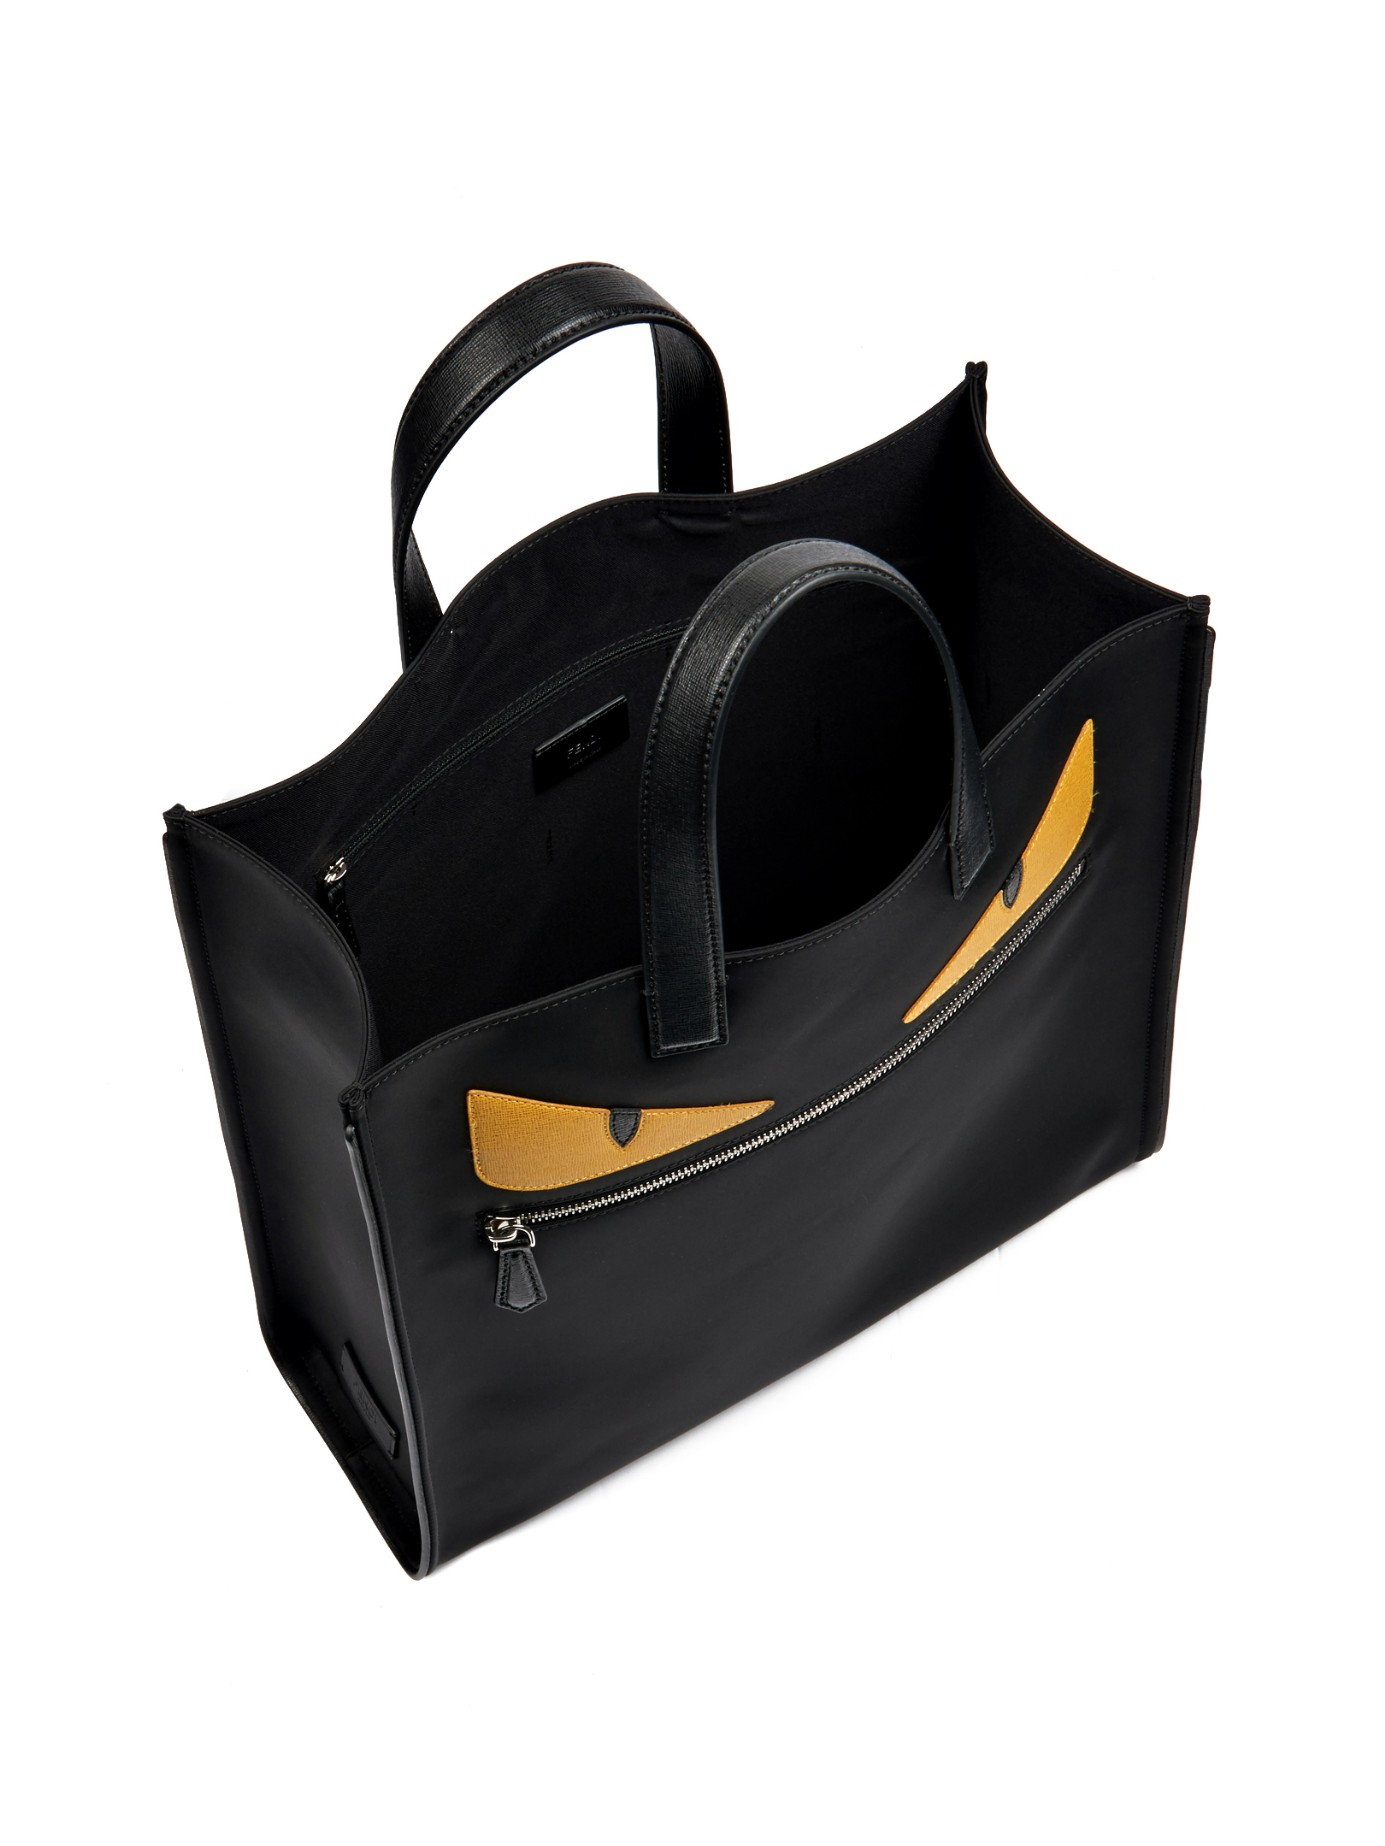 discount lyst fendi bag bugs leather and nylon tote in black for men a2a59  02c06 d635592181437